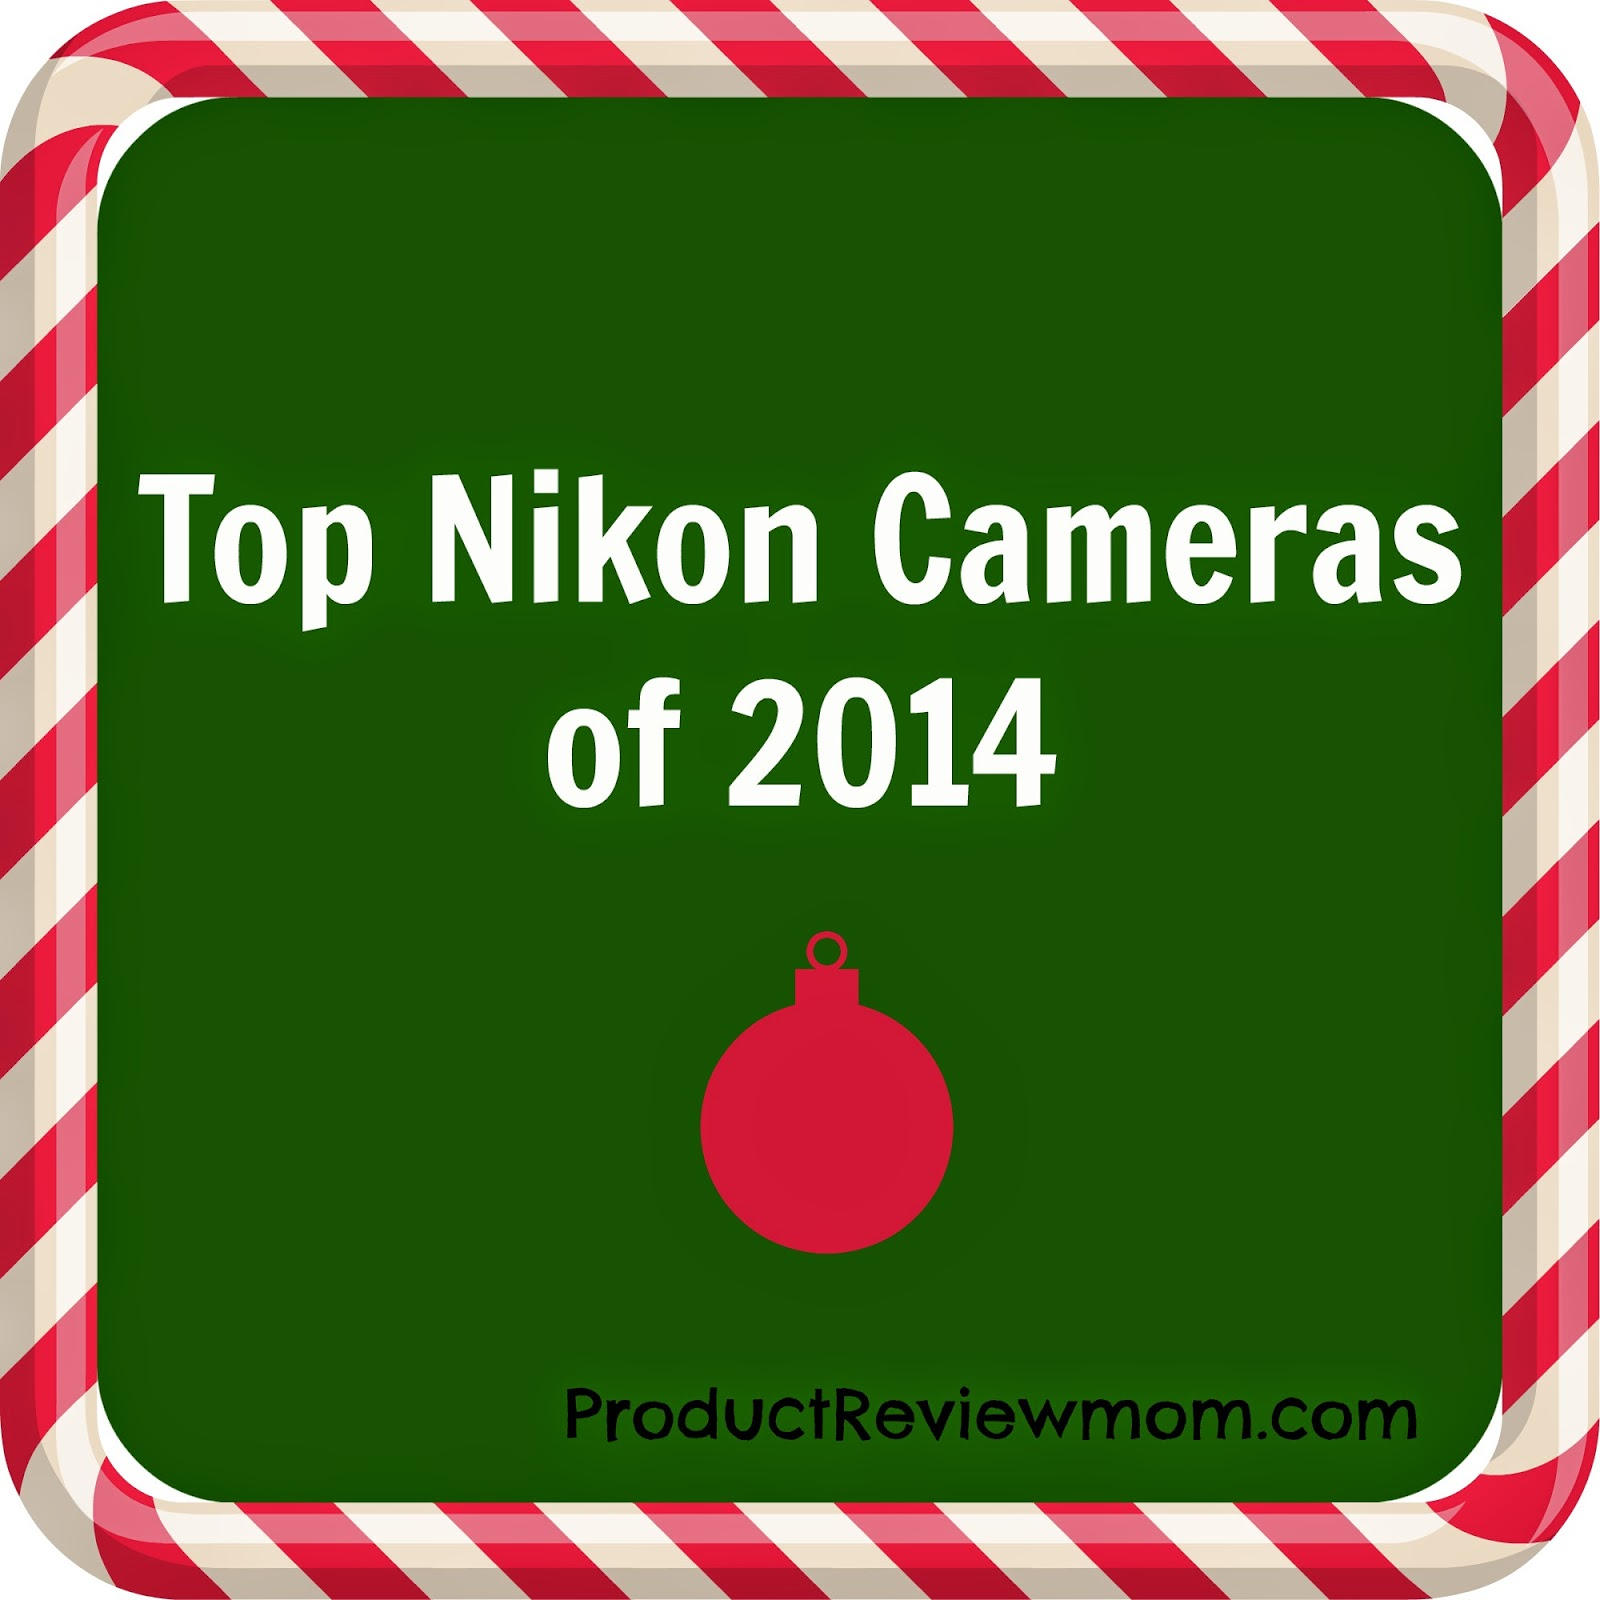 Top Nikon Cameras of 2014 #HolidayGiftGuide via www.productreviewmom.com